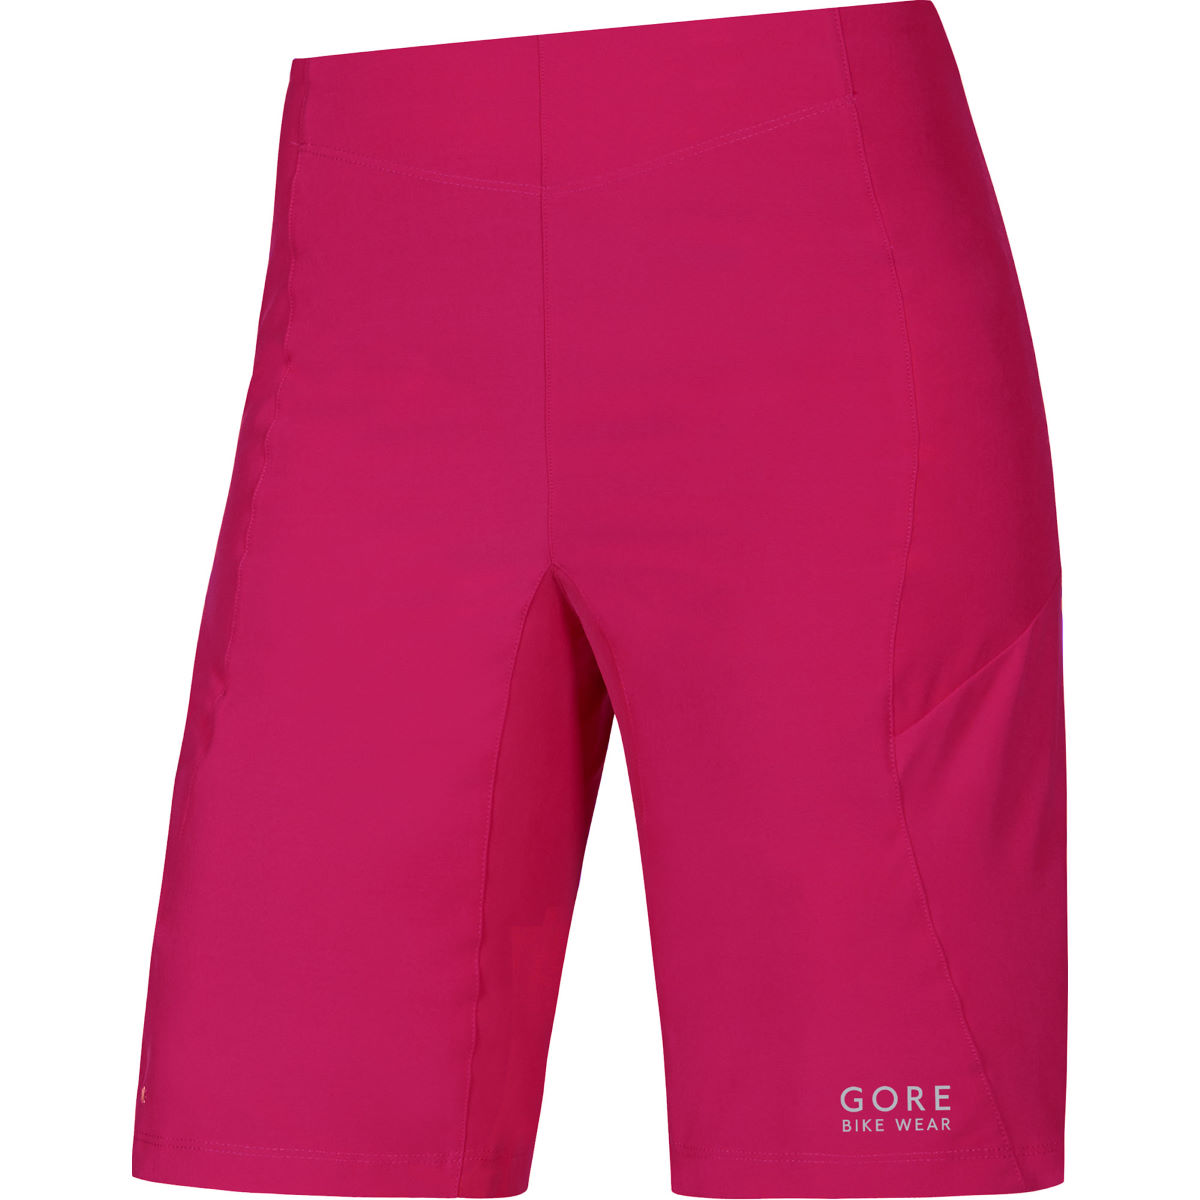 Short Femme Gore Bike Wear Power Trail - S Rose Shorts VTT